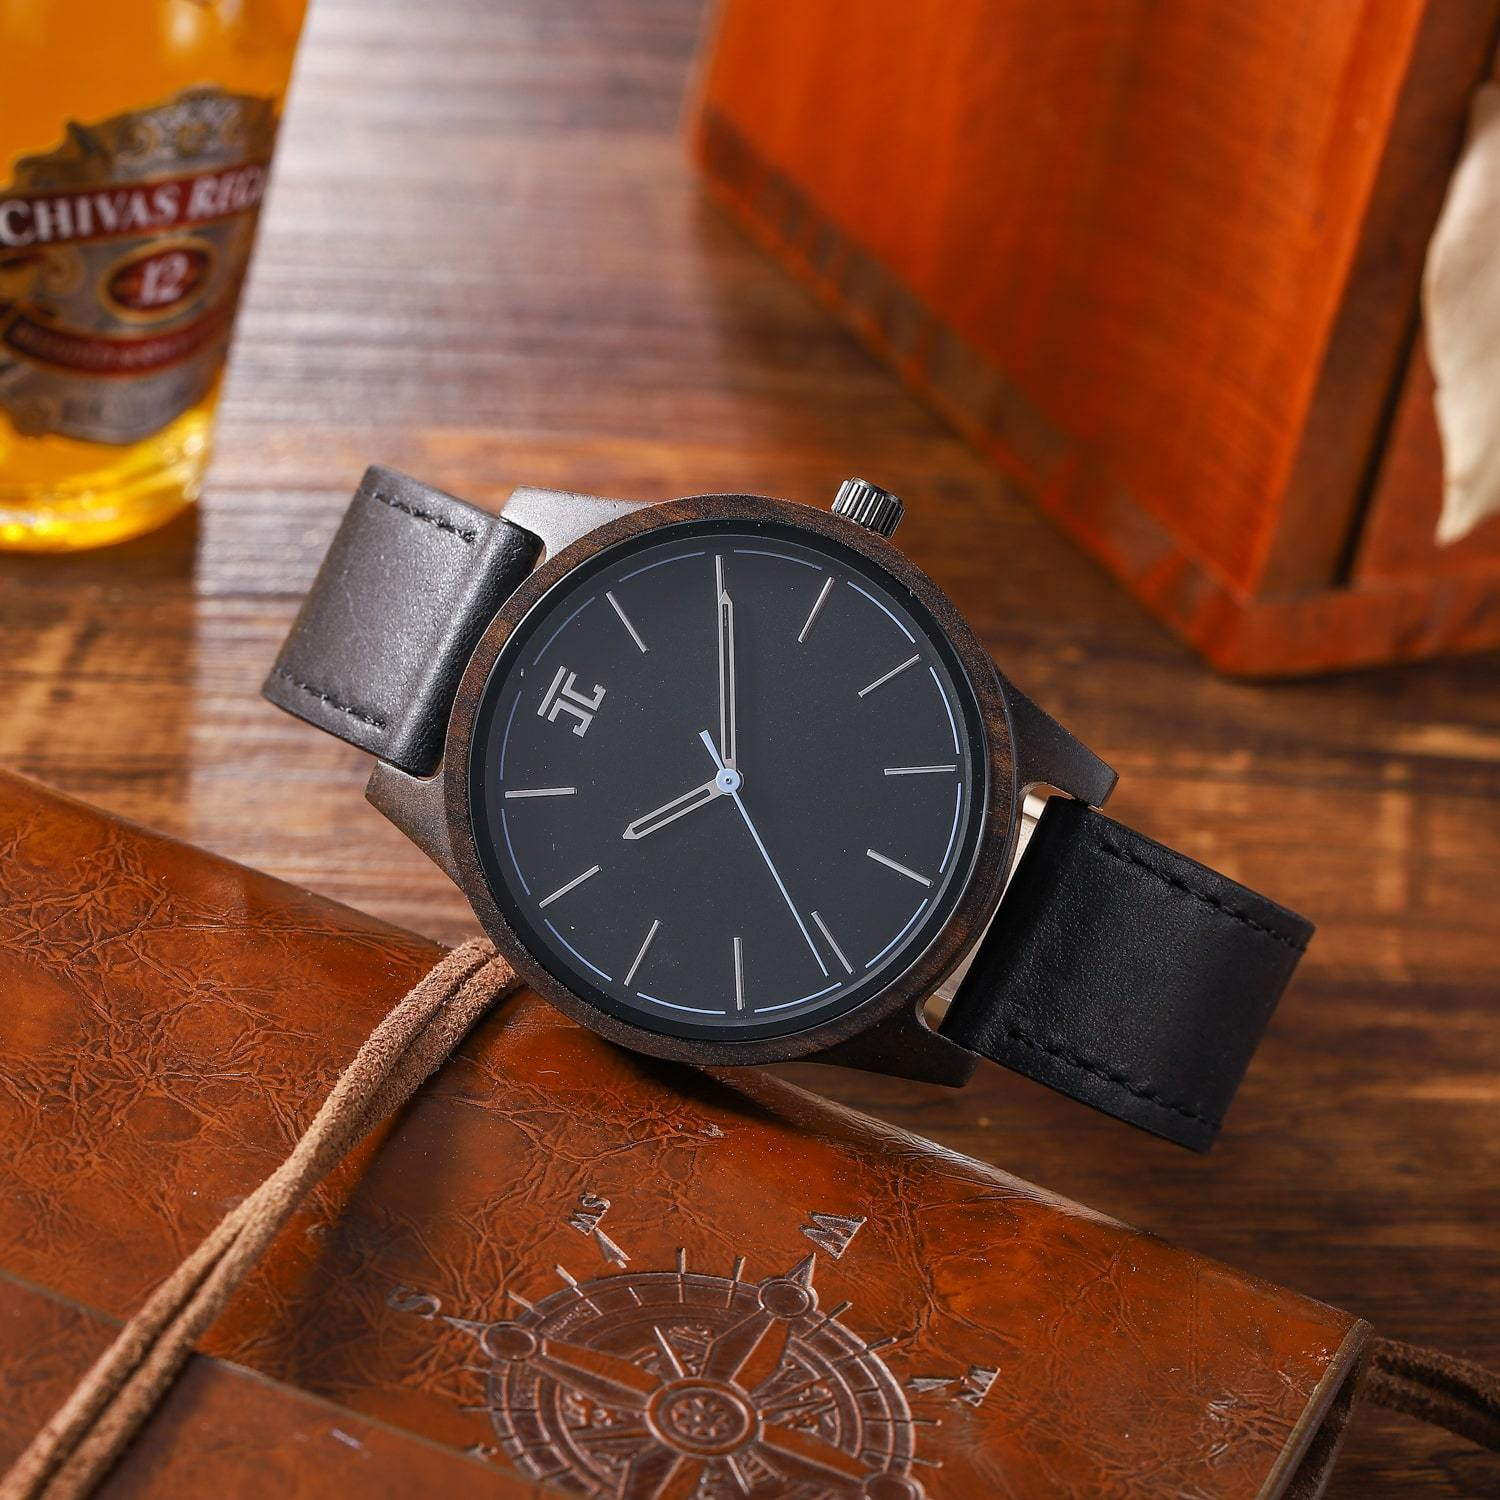 dark wooden watch sitting on table